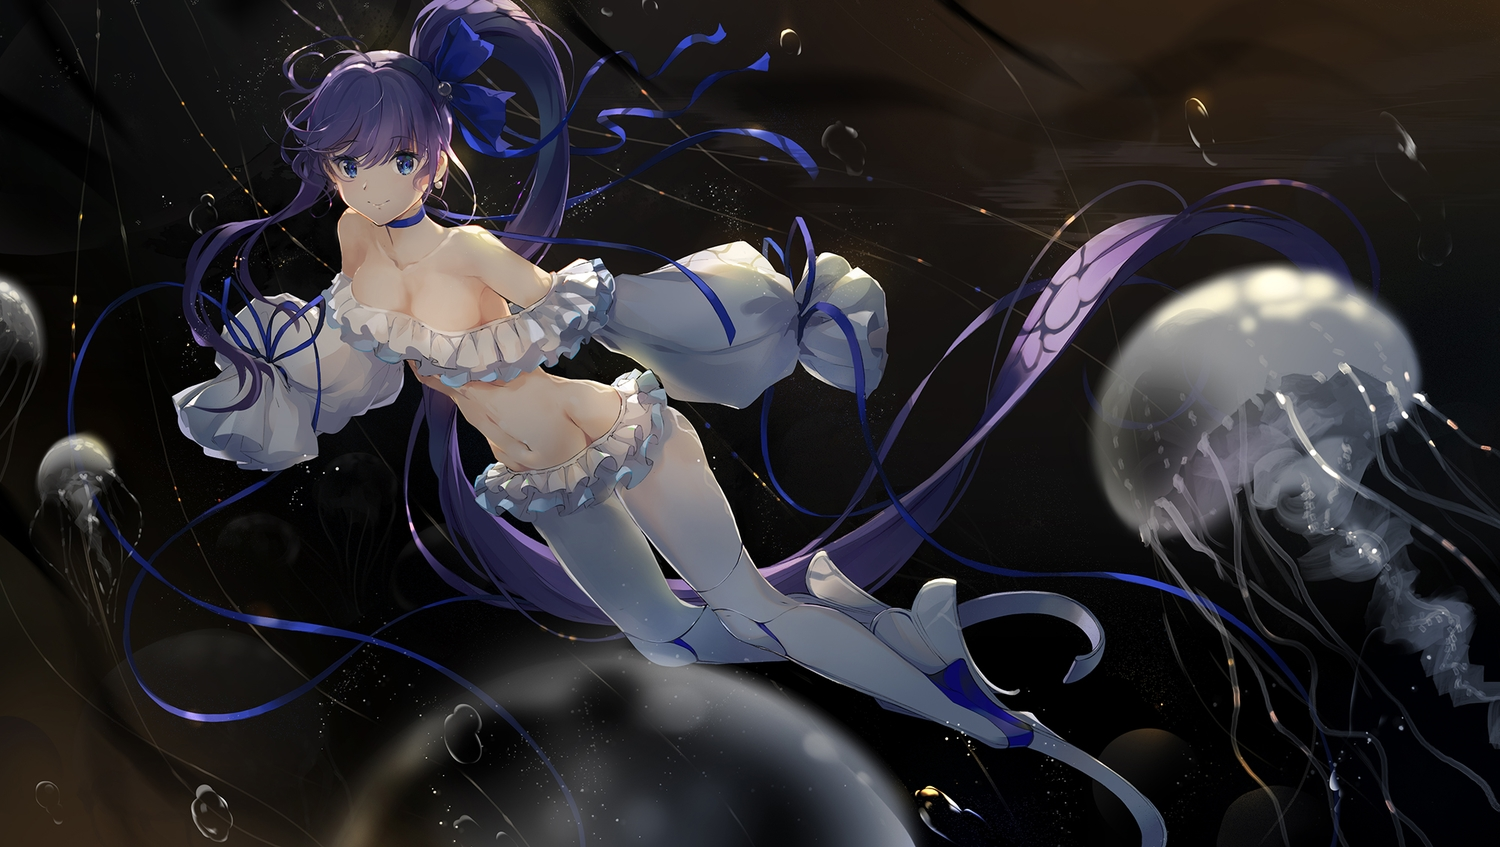 baisi_shaonian blue_eyes breasts bubbles choker cleavage dark fate/grand_order fate_(series) haraguroi_you long_hair meltryllis ponytail purple_hair ribbons underwater water